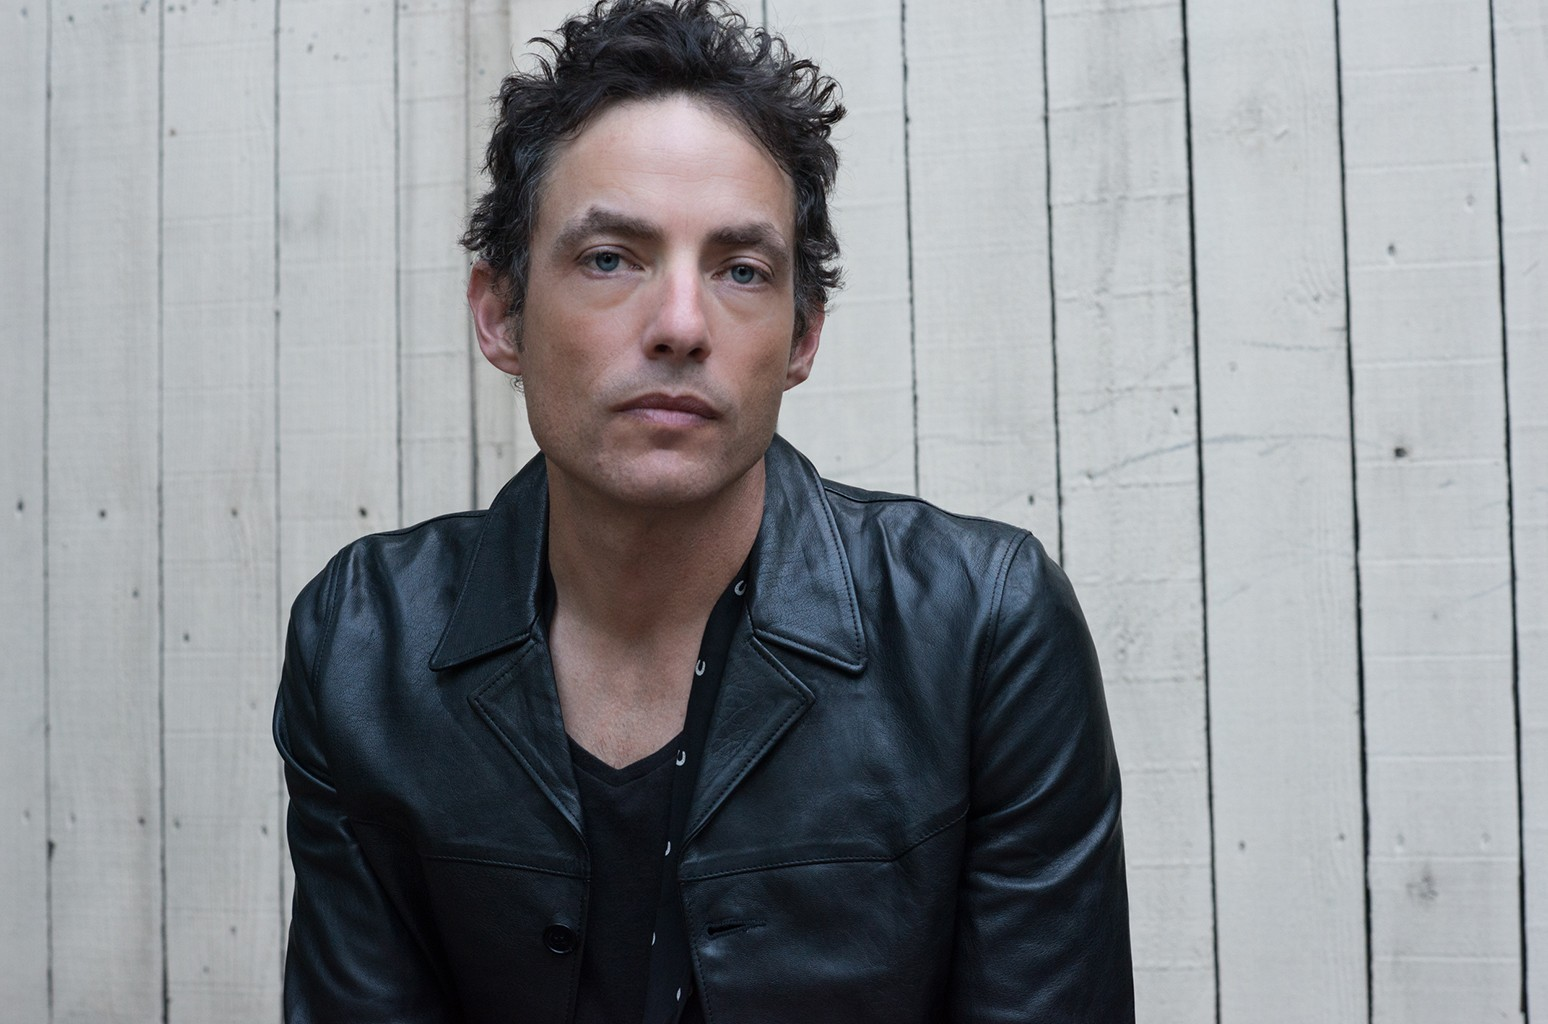 The Wallflowers' 'Exit Wounds' Debuts at No. 3 on Billboard's Top Album Sales Chart